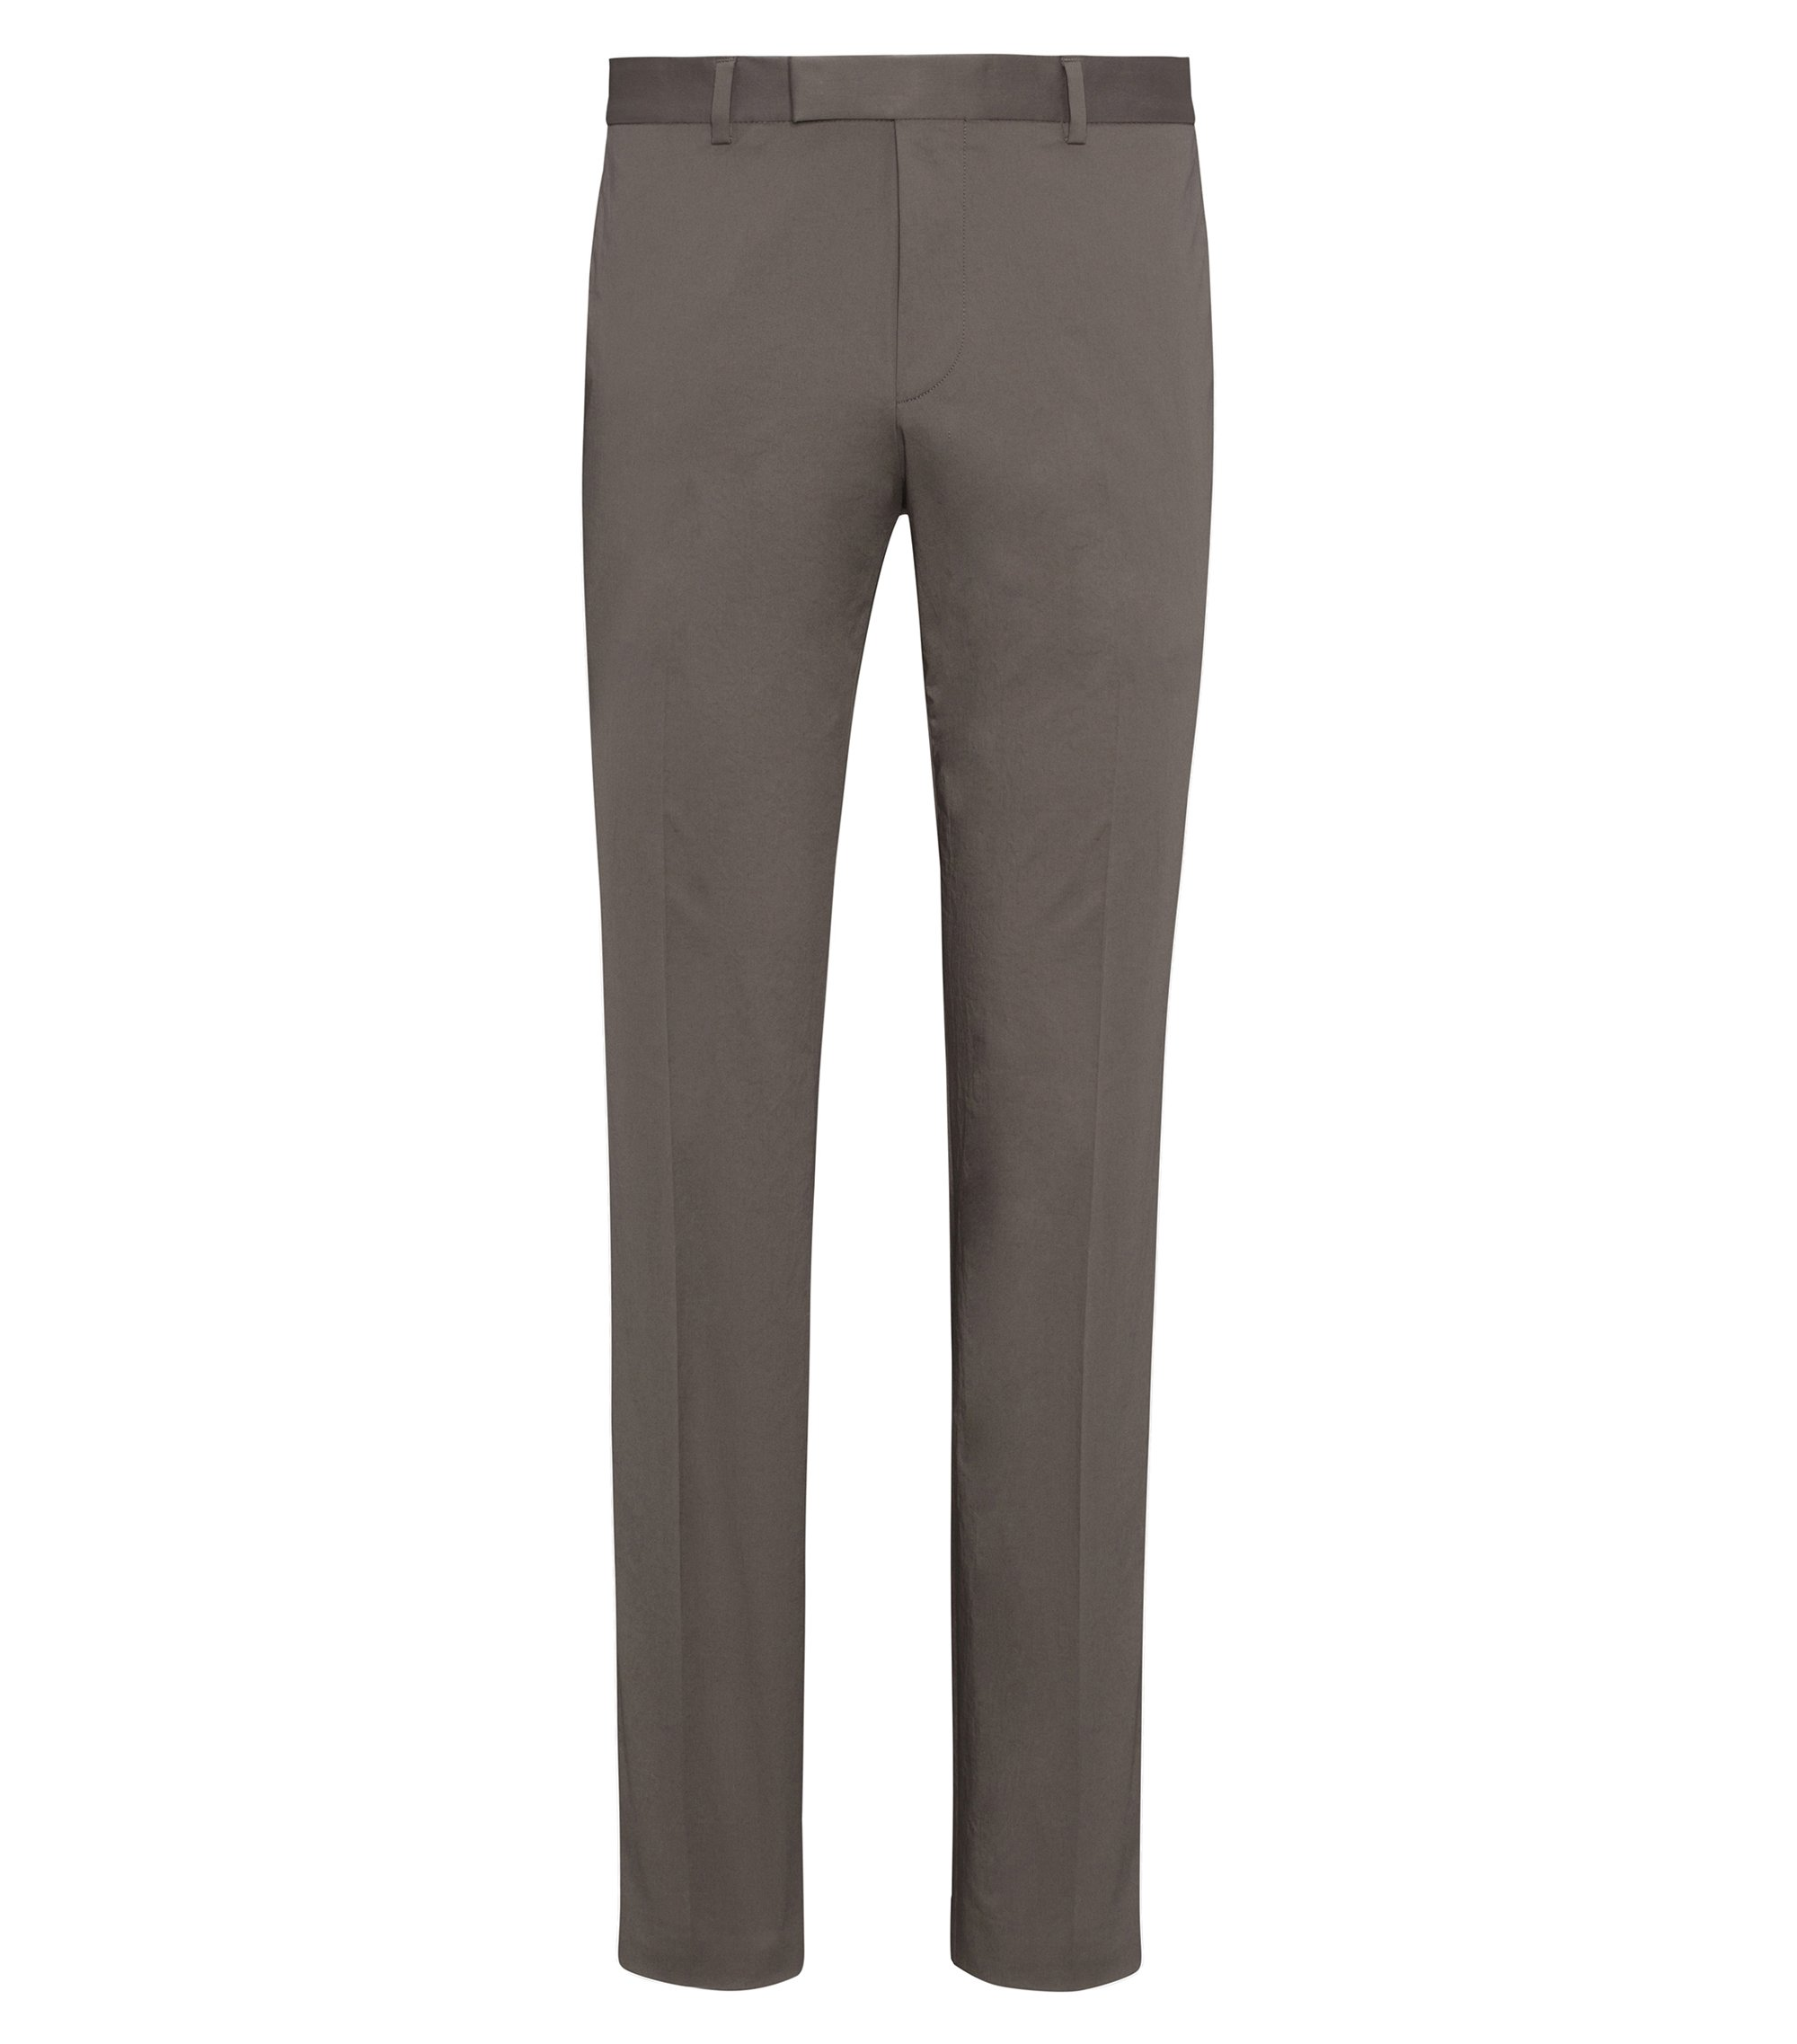 Pantalon Extra Slim Fit en coton Oxford stretch, Marron